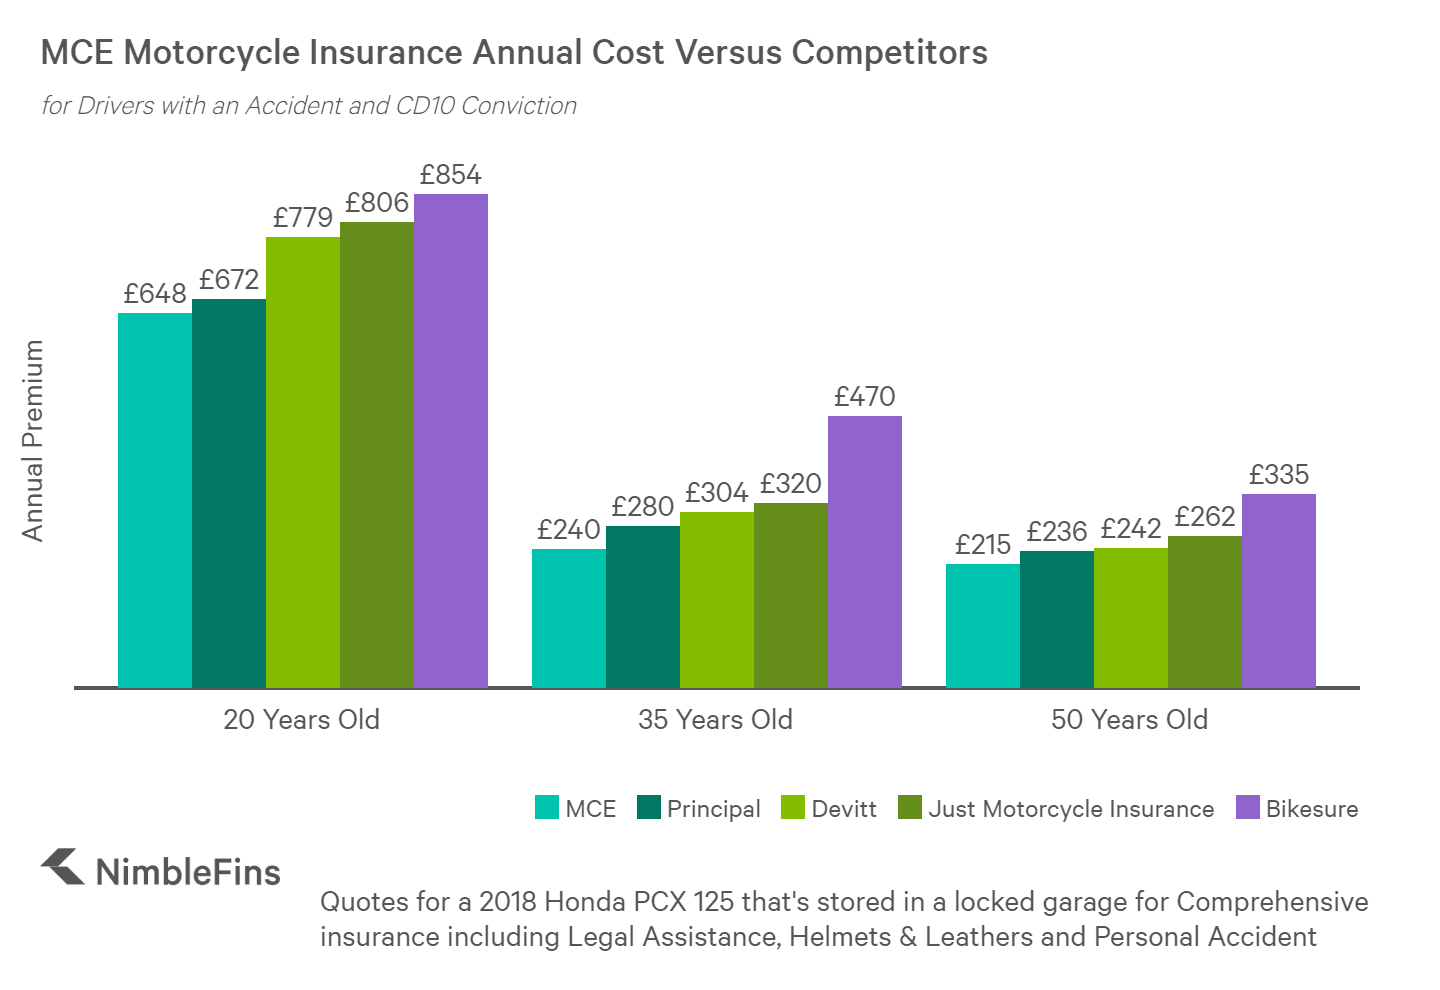 chart showing the motorcycle insurance quotes for a 20 year old, 35 year old and 50 year old convicted driver from MCE, Principal, Devitt, Just Motorcycle Insurance and Bikesure